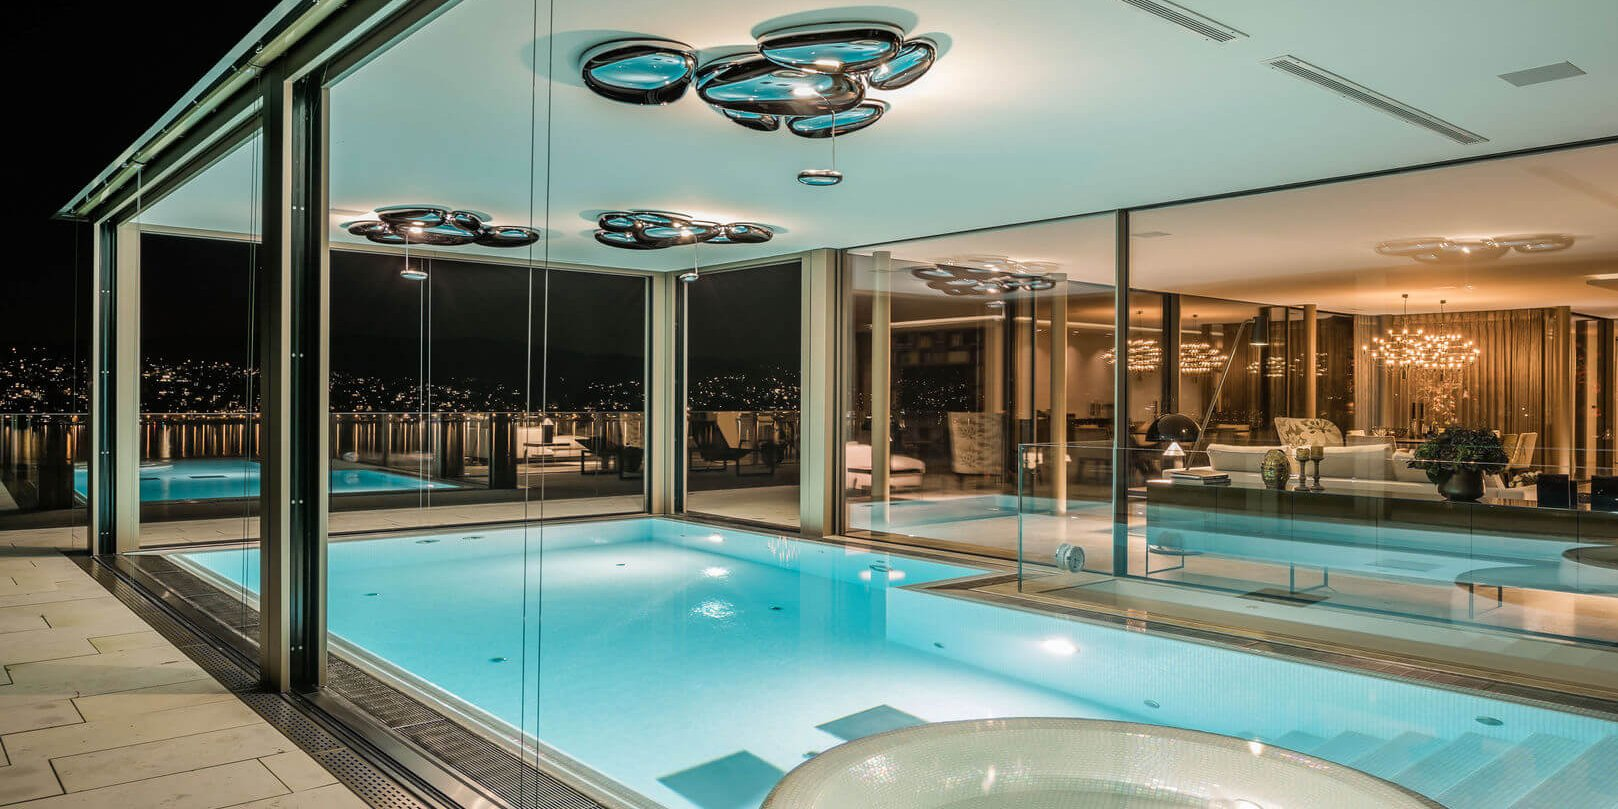 Luxury windows in swimming pool area at night